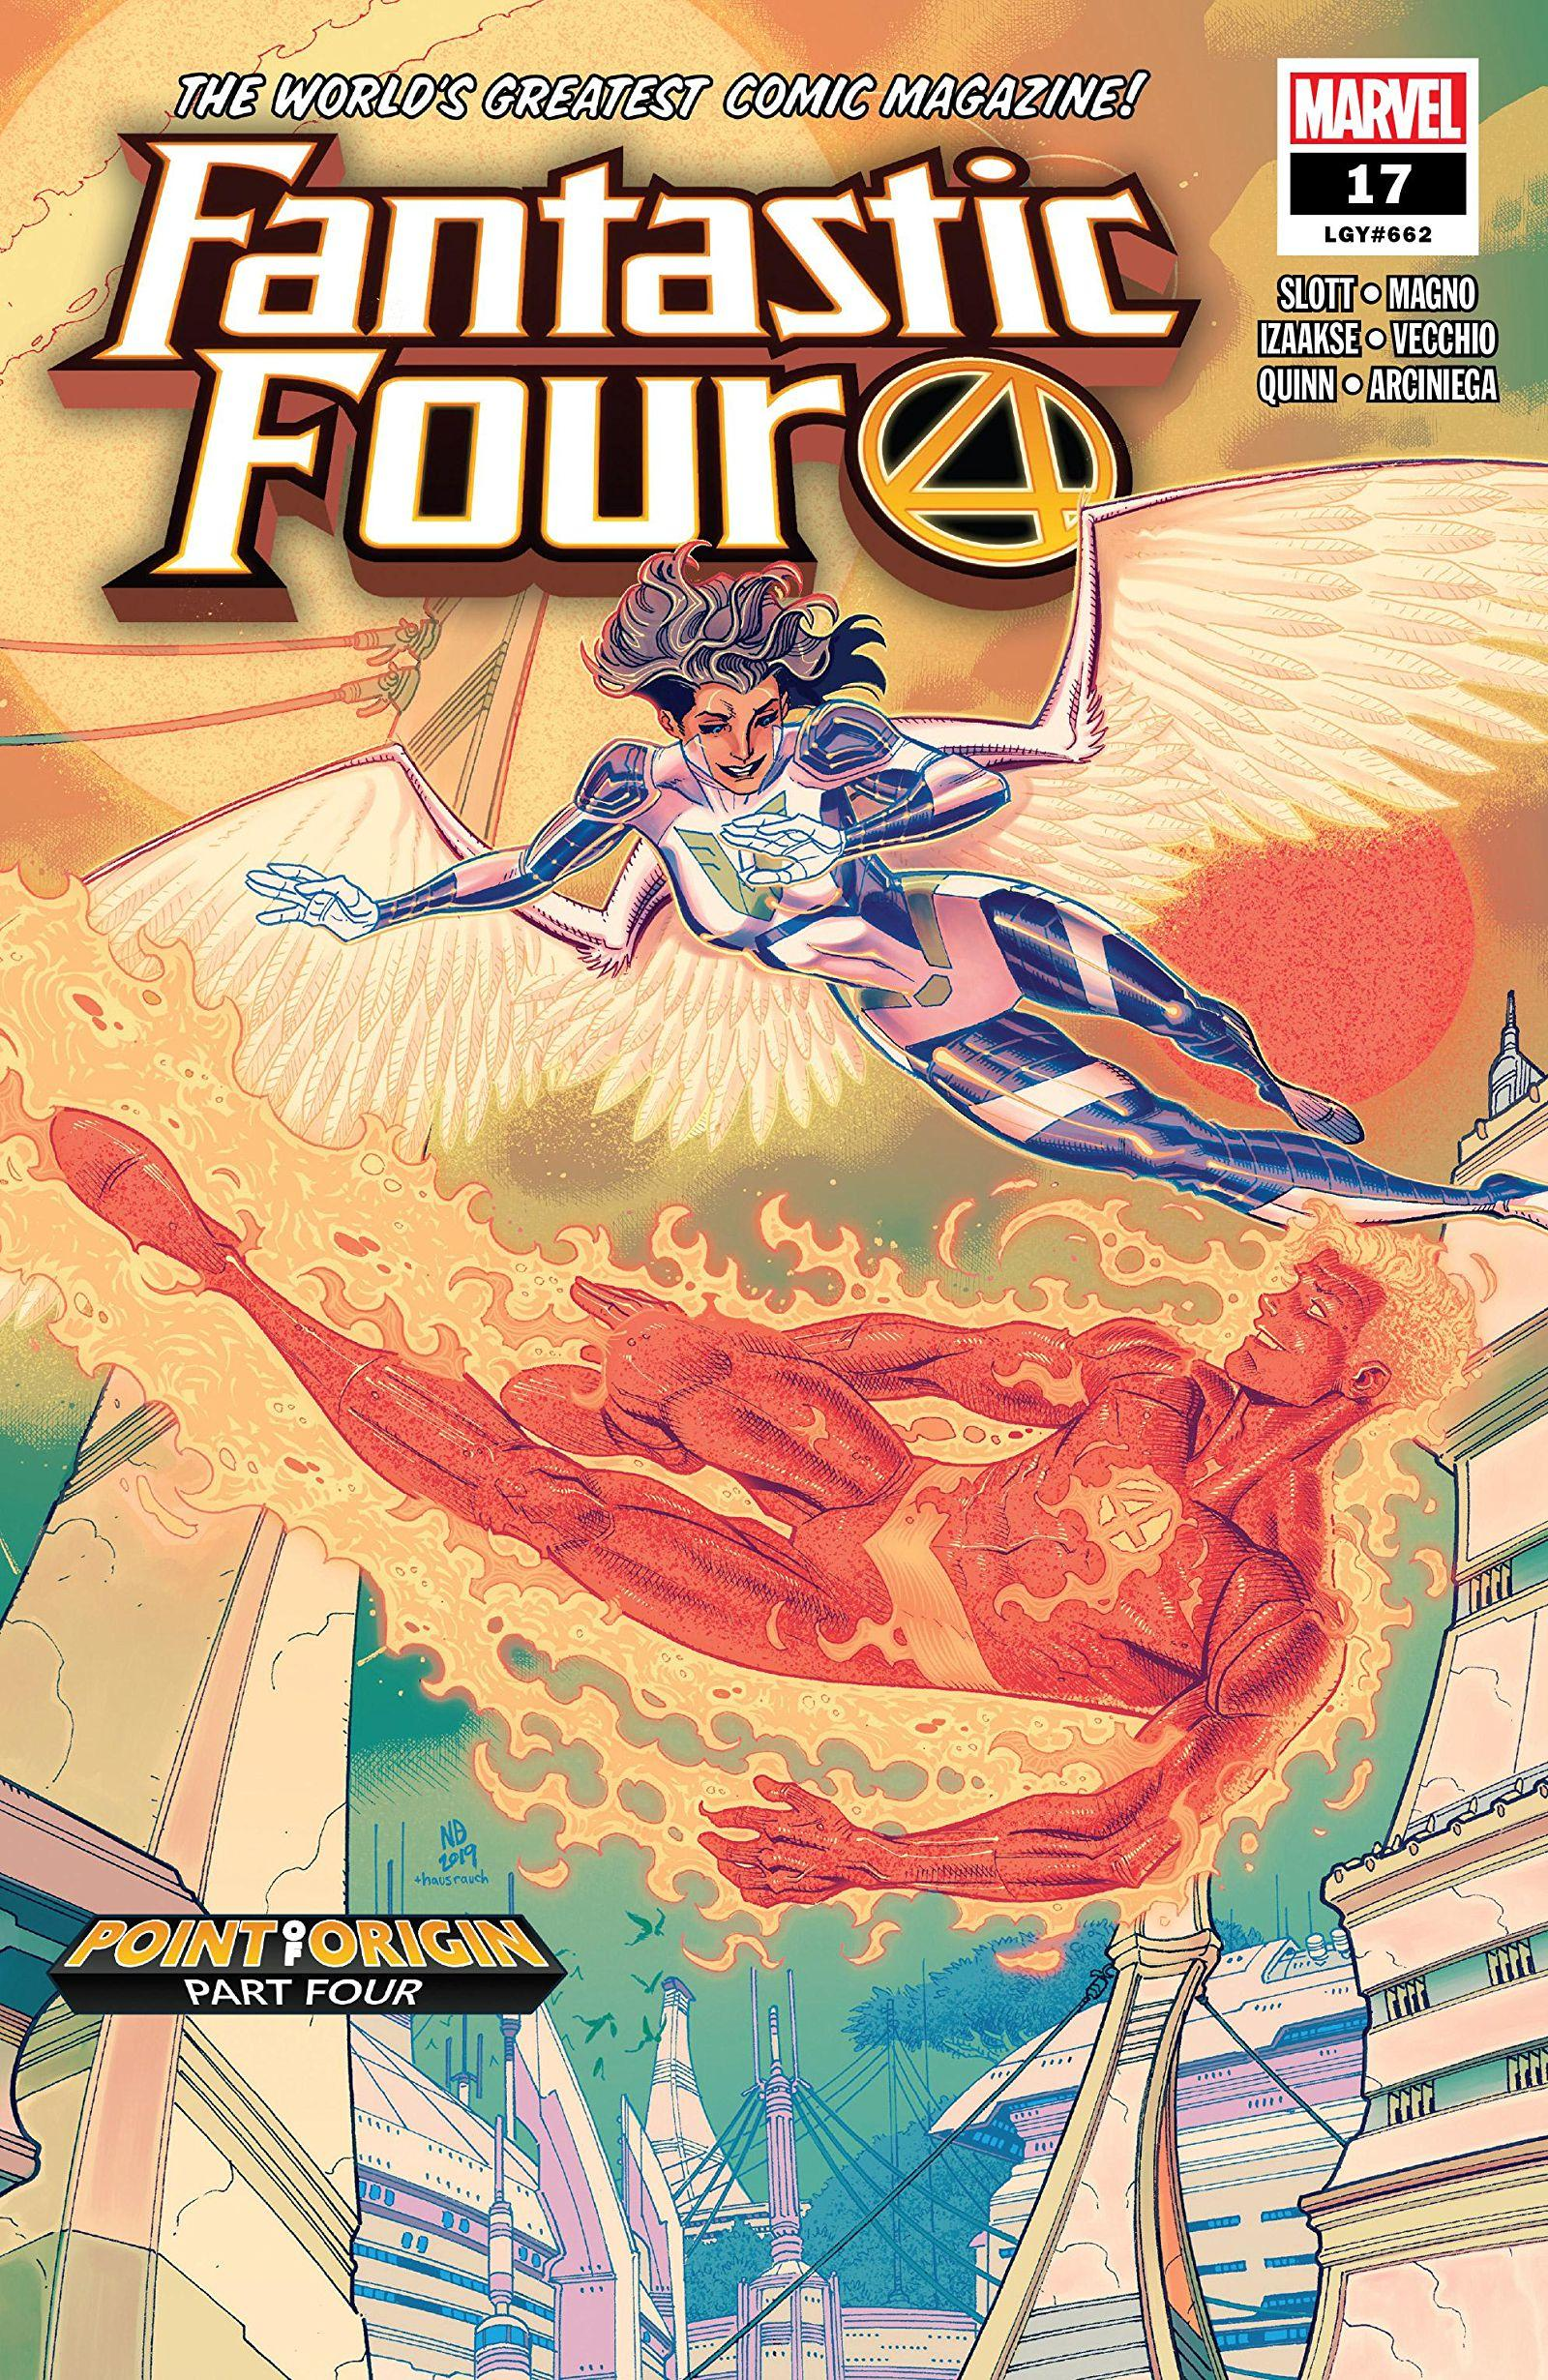 Fantastic Four Vol. 6 #17